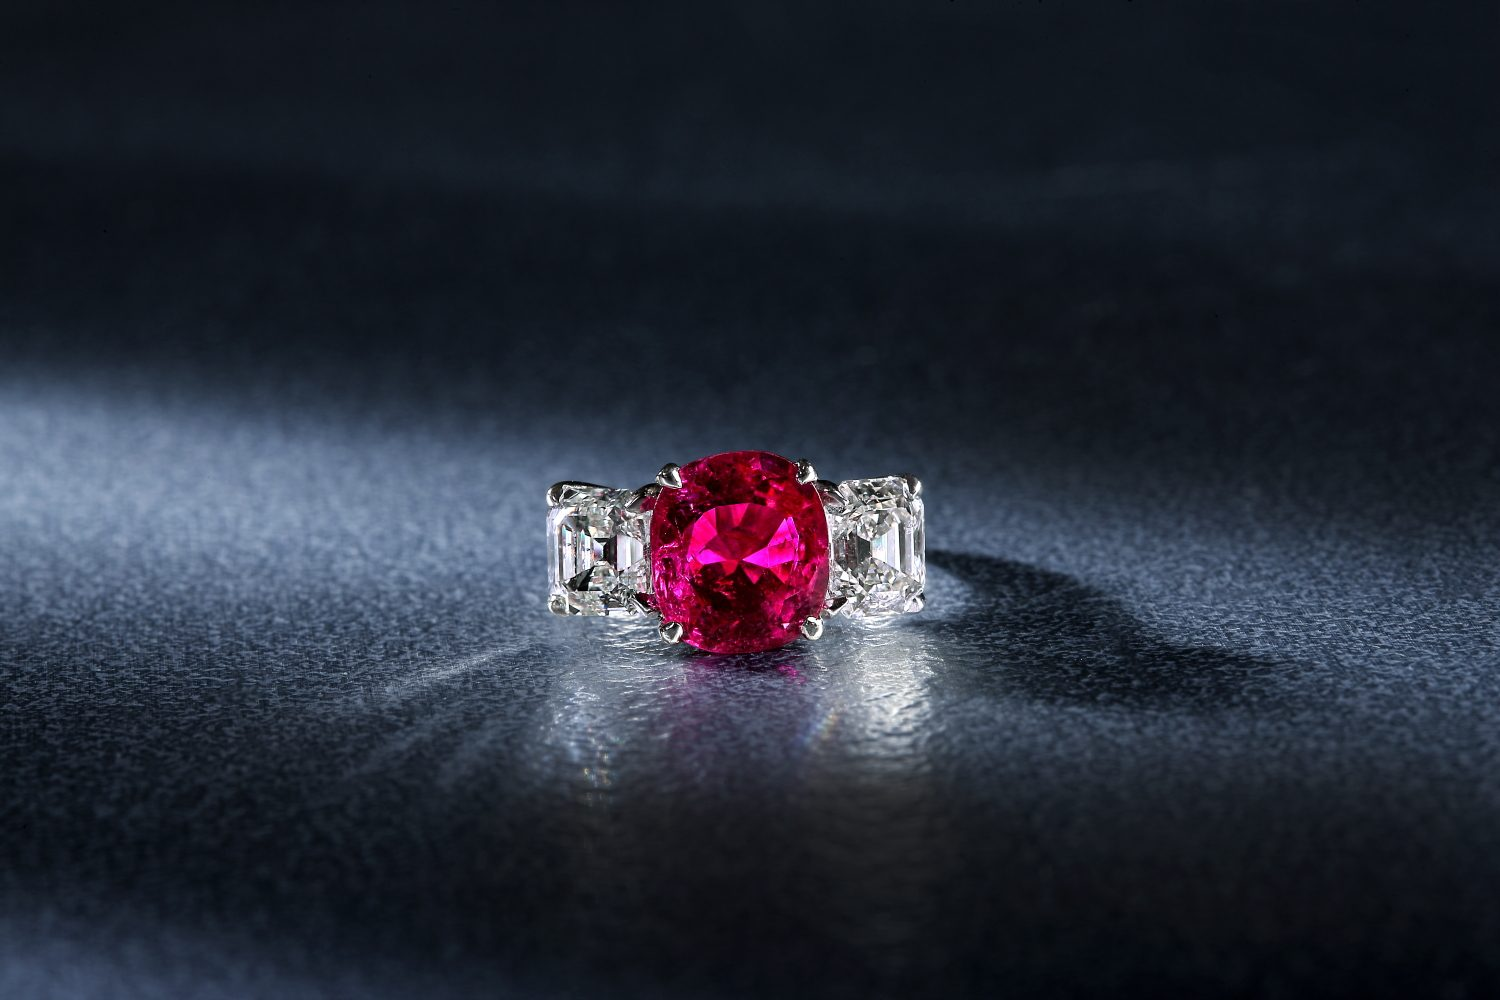 RUBY RING - KANJIMULL & SONS JEWELLERS